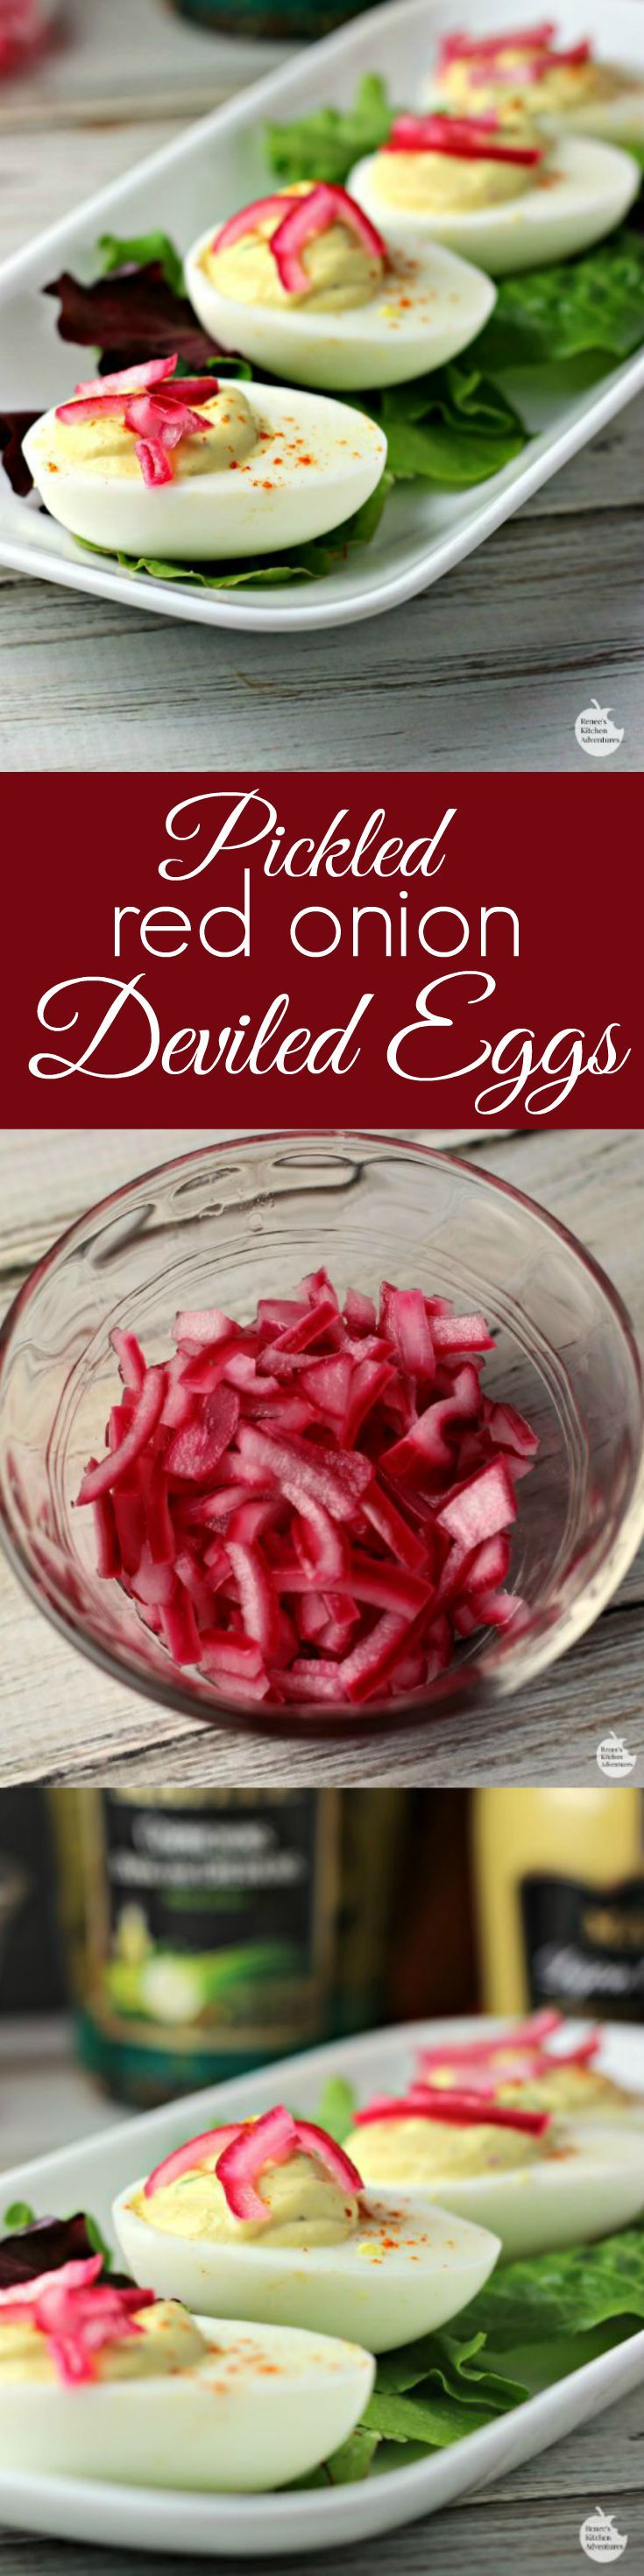 Pickled Red Onion Deviled Eggs | by Renee's Kitchen Adventures - Delicious recipe for a great anytime snack or appetizer! Crunchy, sweet, and savory all in one bite!